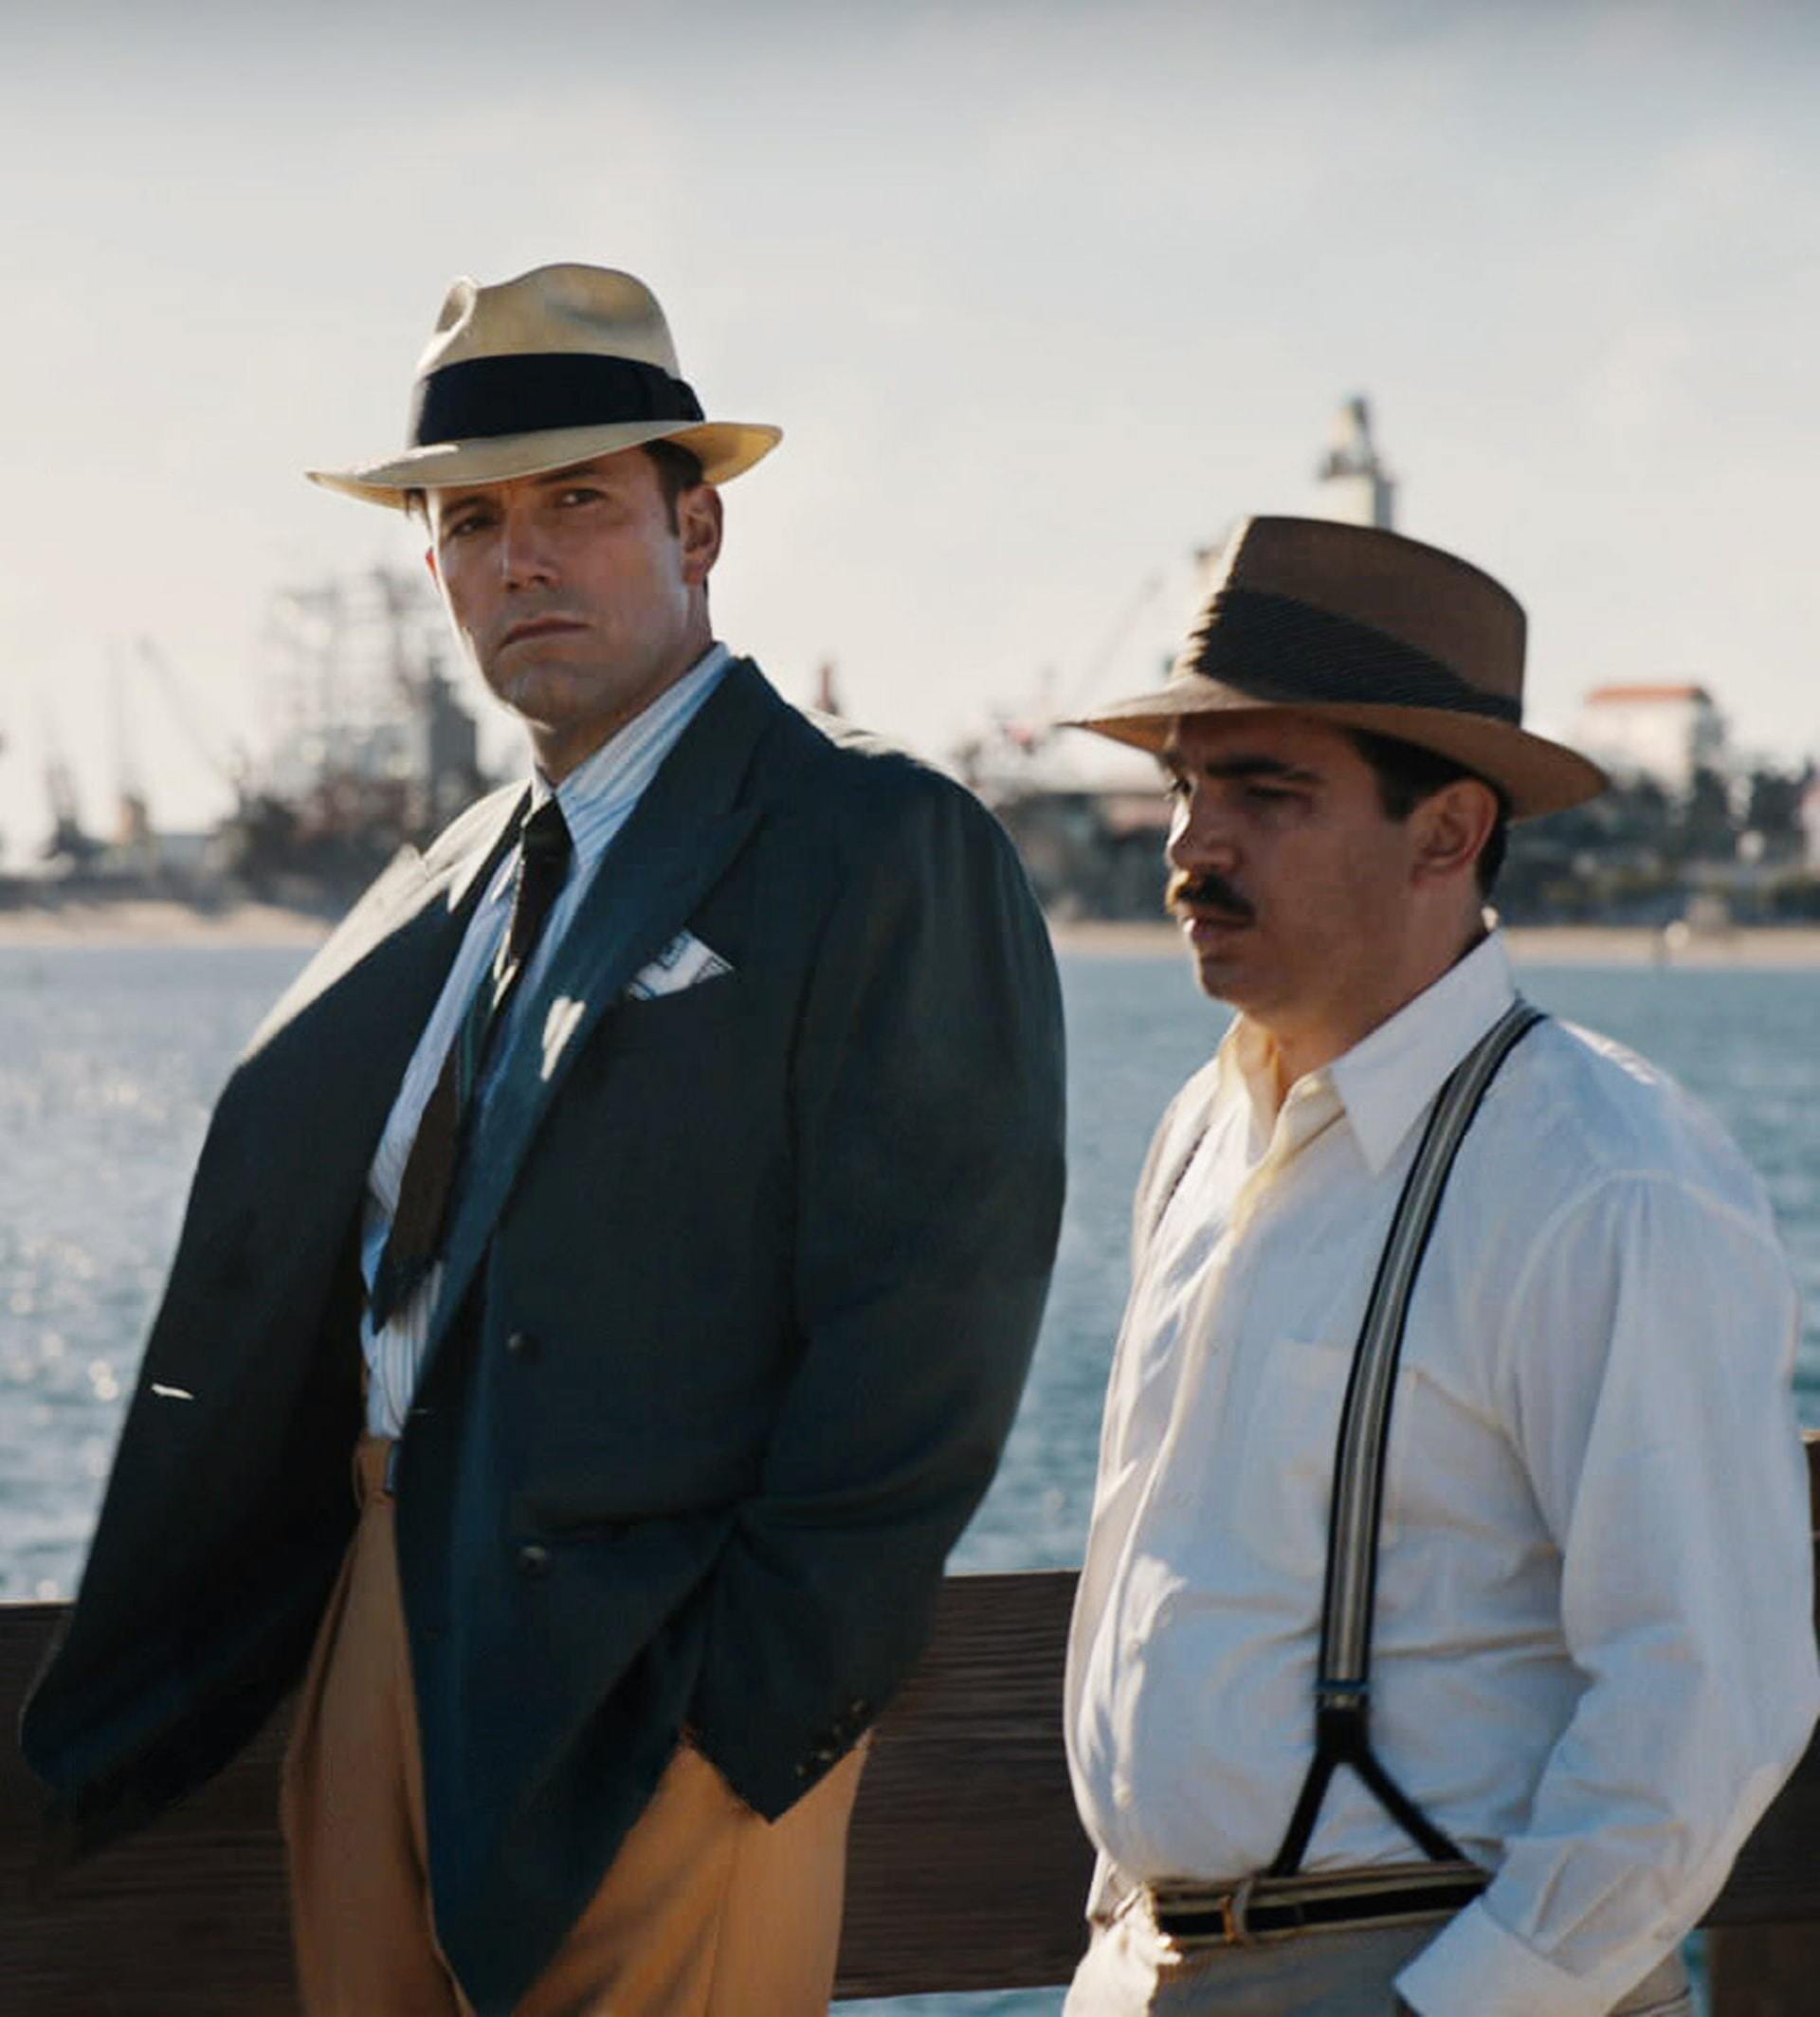 """BEN AFFLECK as Joe Coughlin and CHRIS MESSINA as Dion Bartolo in Warner Bros. Pictures' dramatic crime thriller """"LIVE BY NIGHT,"""" a Warner Bros. Pictures release."""